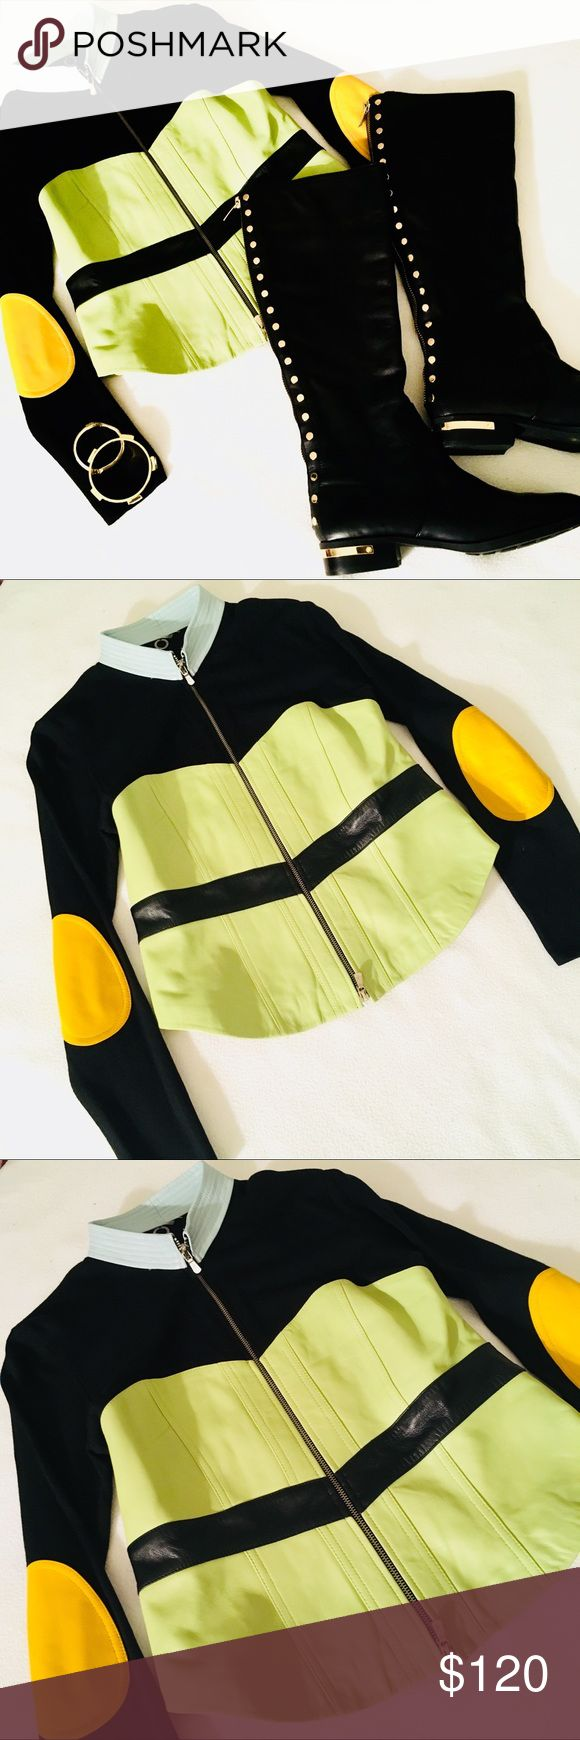 Color block Leather Sweater Elbow Patch Jacket Super cute black sweater jacket with 100% Leather in shades of aqua lime and yellow. High quality. Perfect addition to any preppy and stylish wardrobe Jackets & Coats